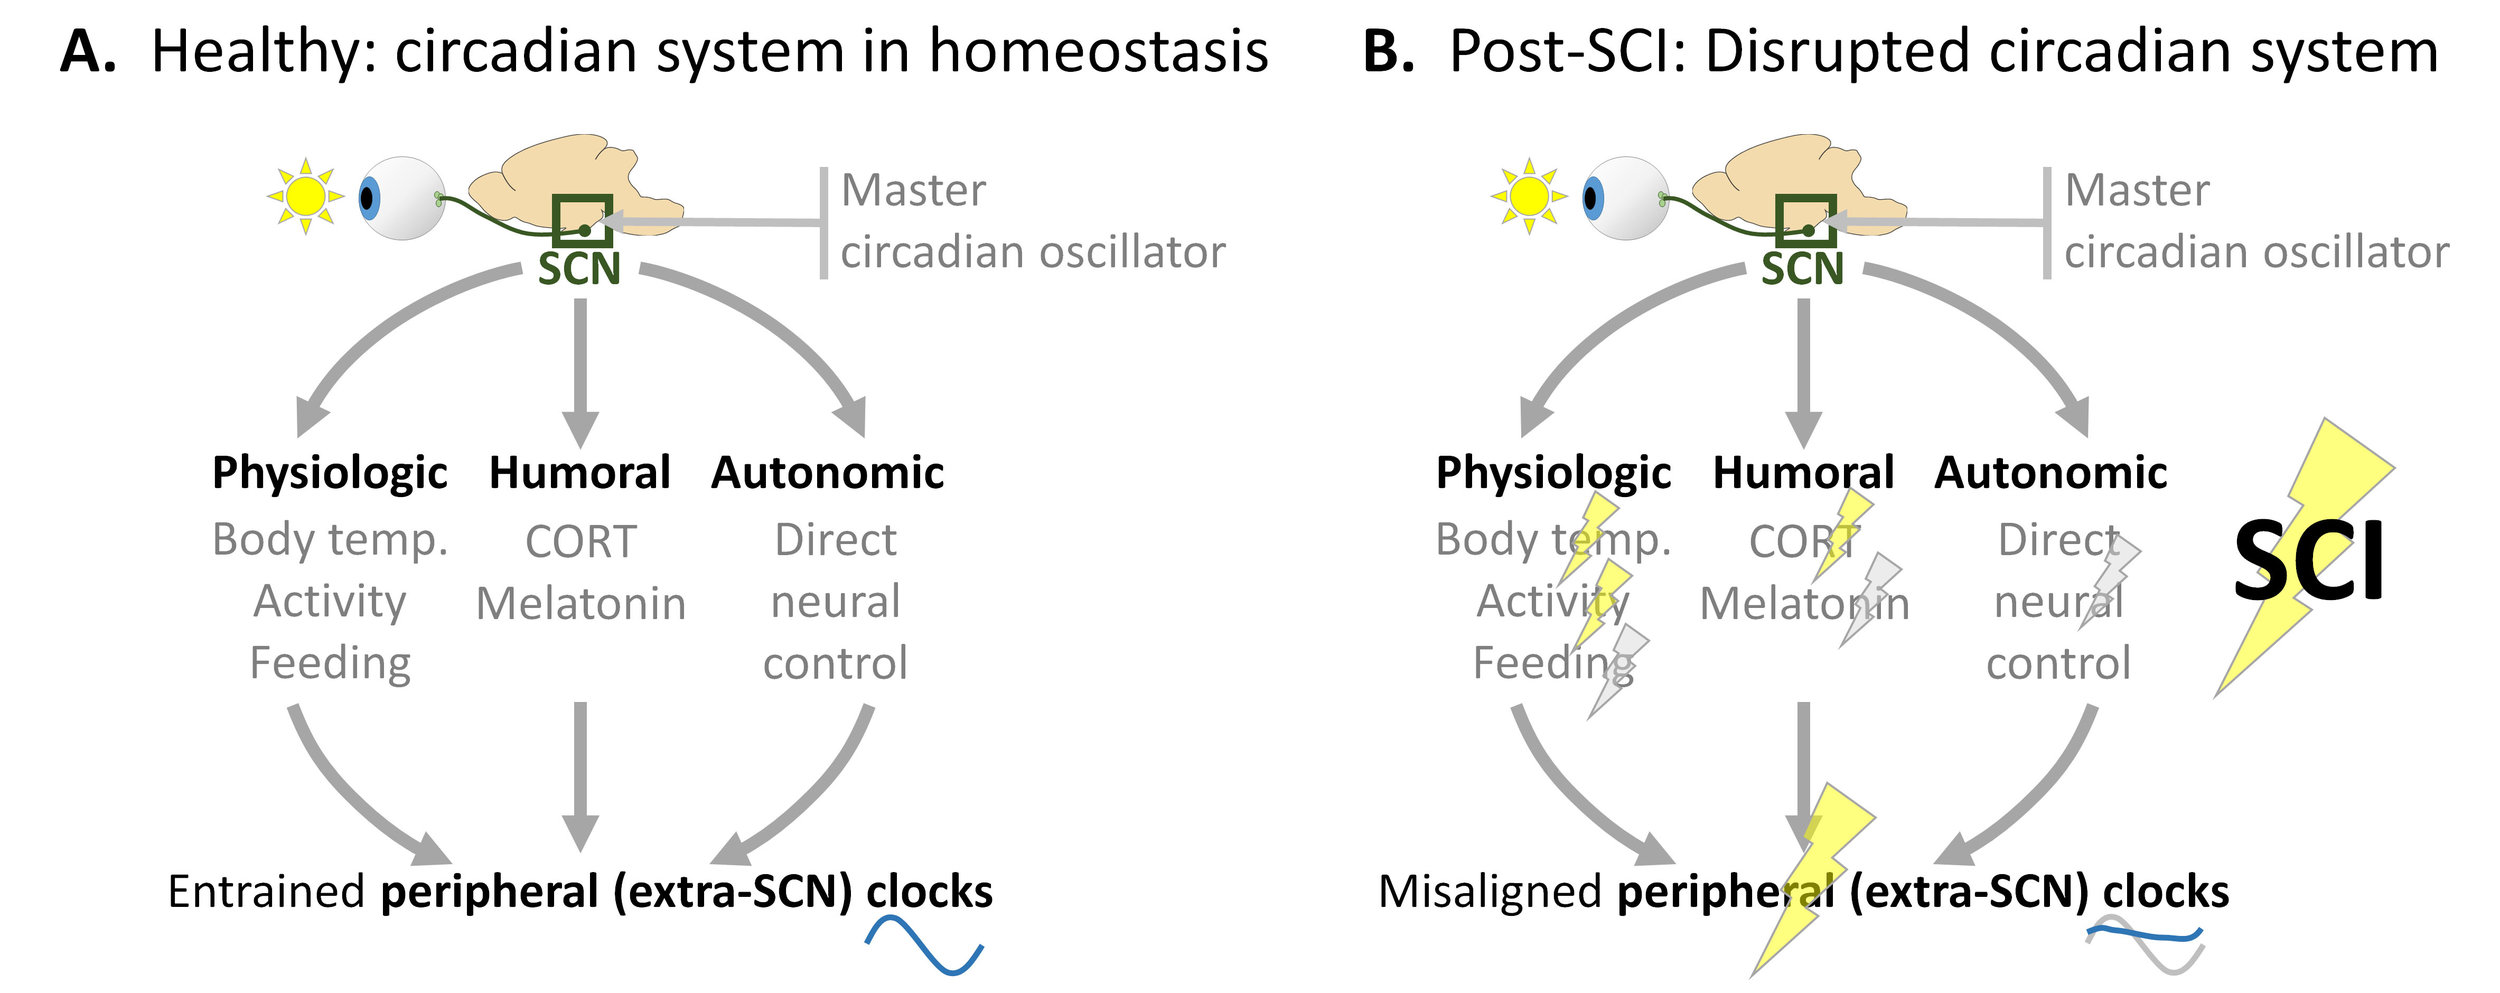 We revealed recently that spinal cord injury disrupts the circadian system. Please see our studies published in   eNeuro   and in   J. Neurotrauma  .